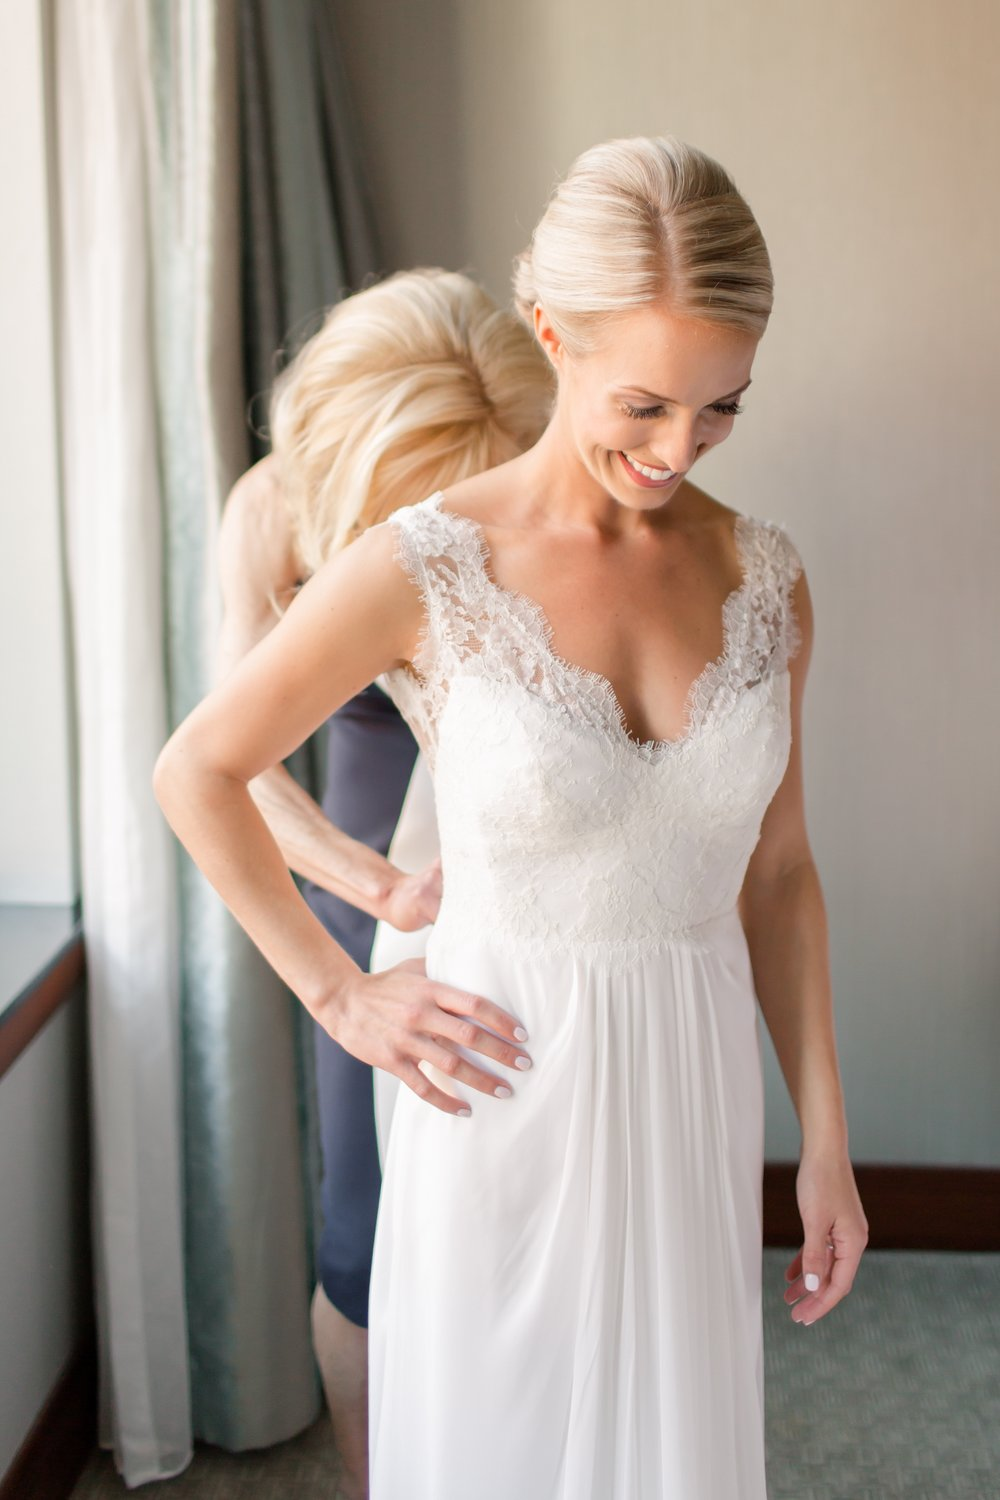 McAnelly 1. Getting Ready-74_anna grace photography georgetown virginia wedding photographer ritz carlton wedding photo.jpg